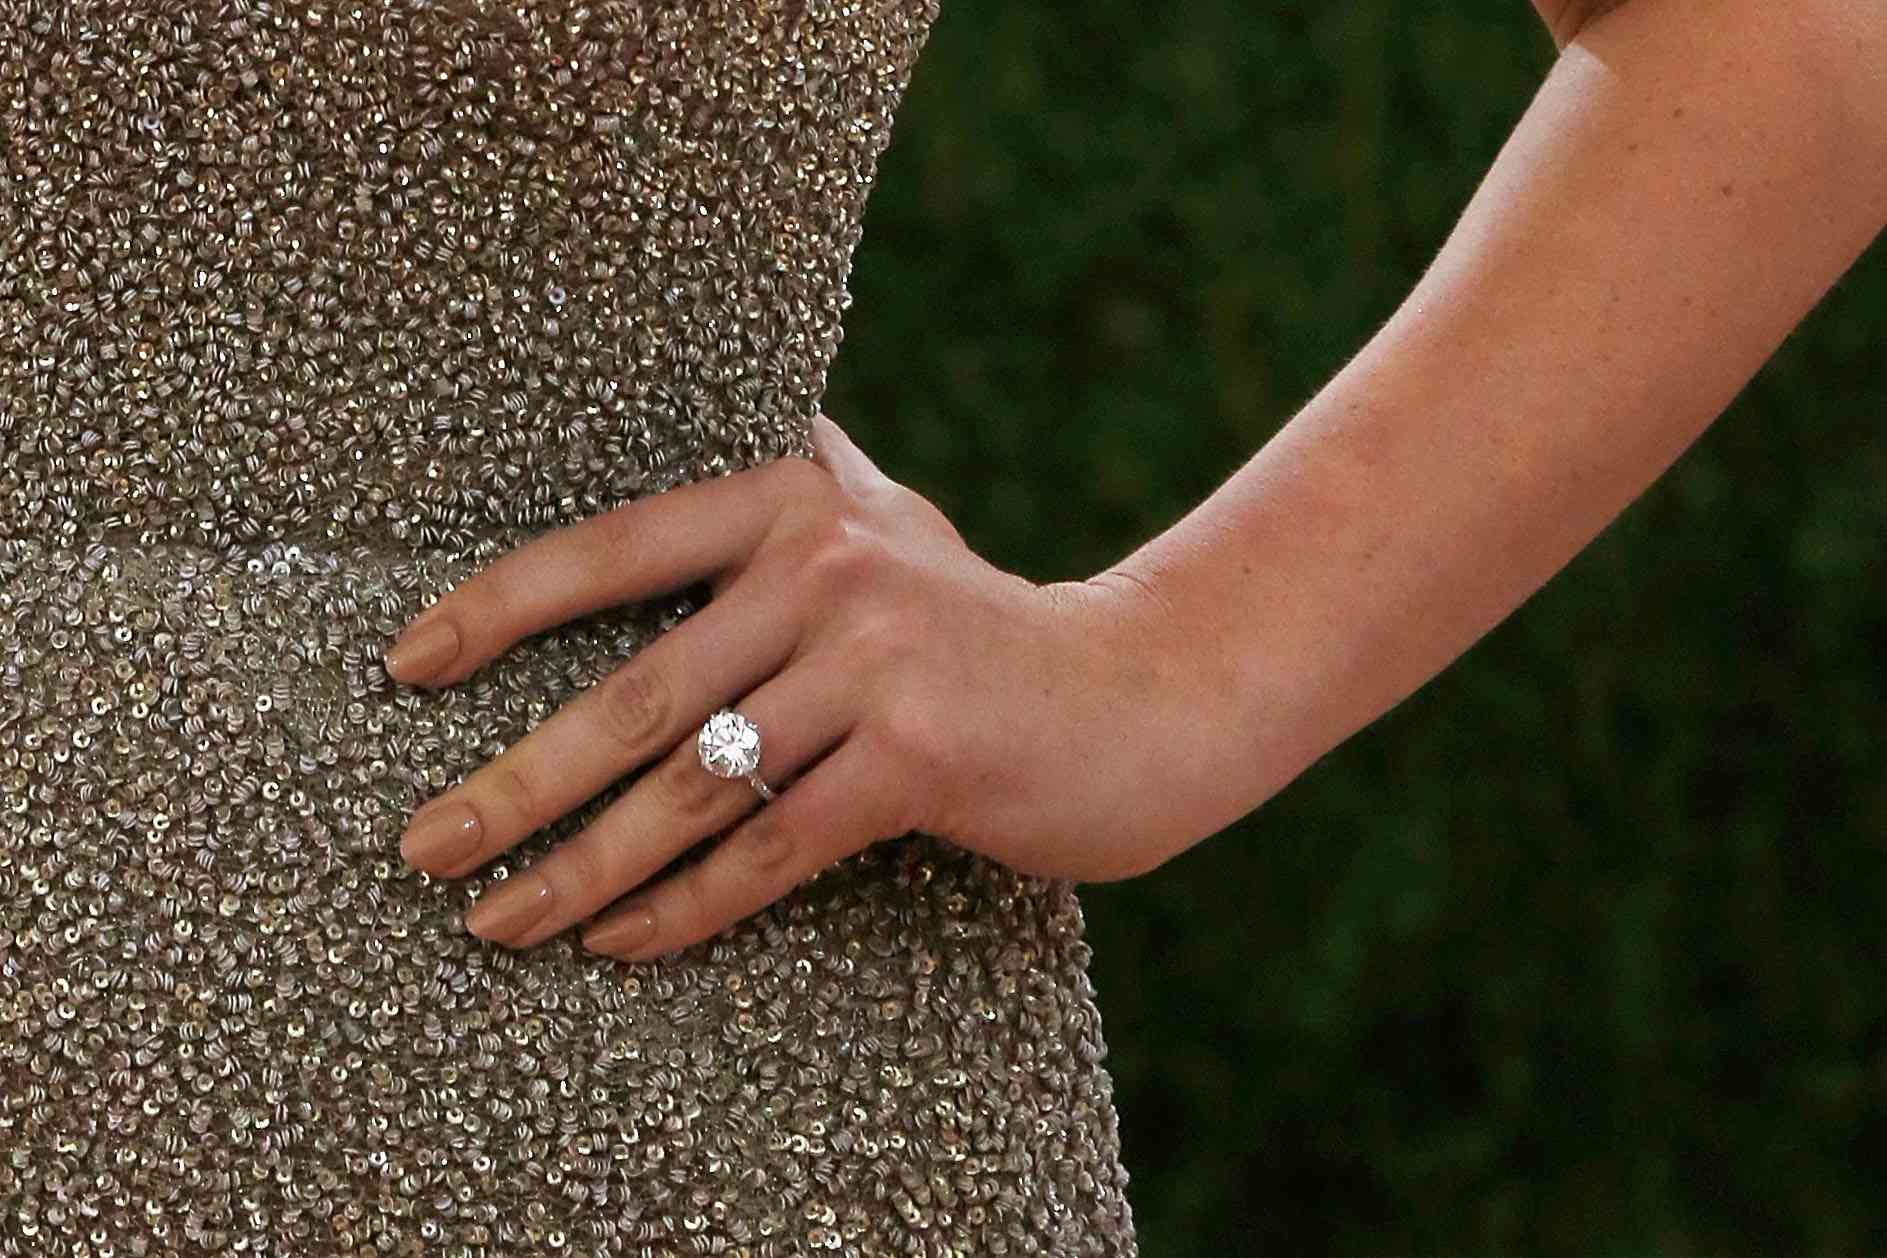 """NEW YORK, NY - MAY 02: Kate Upton, engagement ring detail, attends """"Manus x Machina: Fashion in an Age of Technology"""", the 2016 Costume Institute Gala at the Metropolitan Museum of Art on May 02, 2016 in New York, New York. (Photo by Taylor Hill/FilmMagic)"""